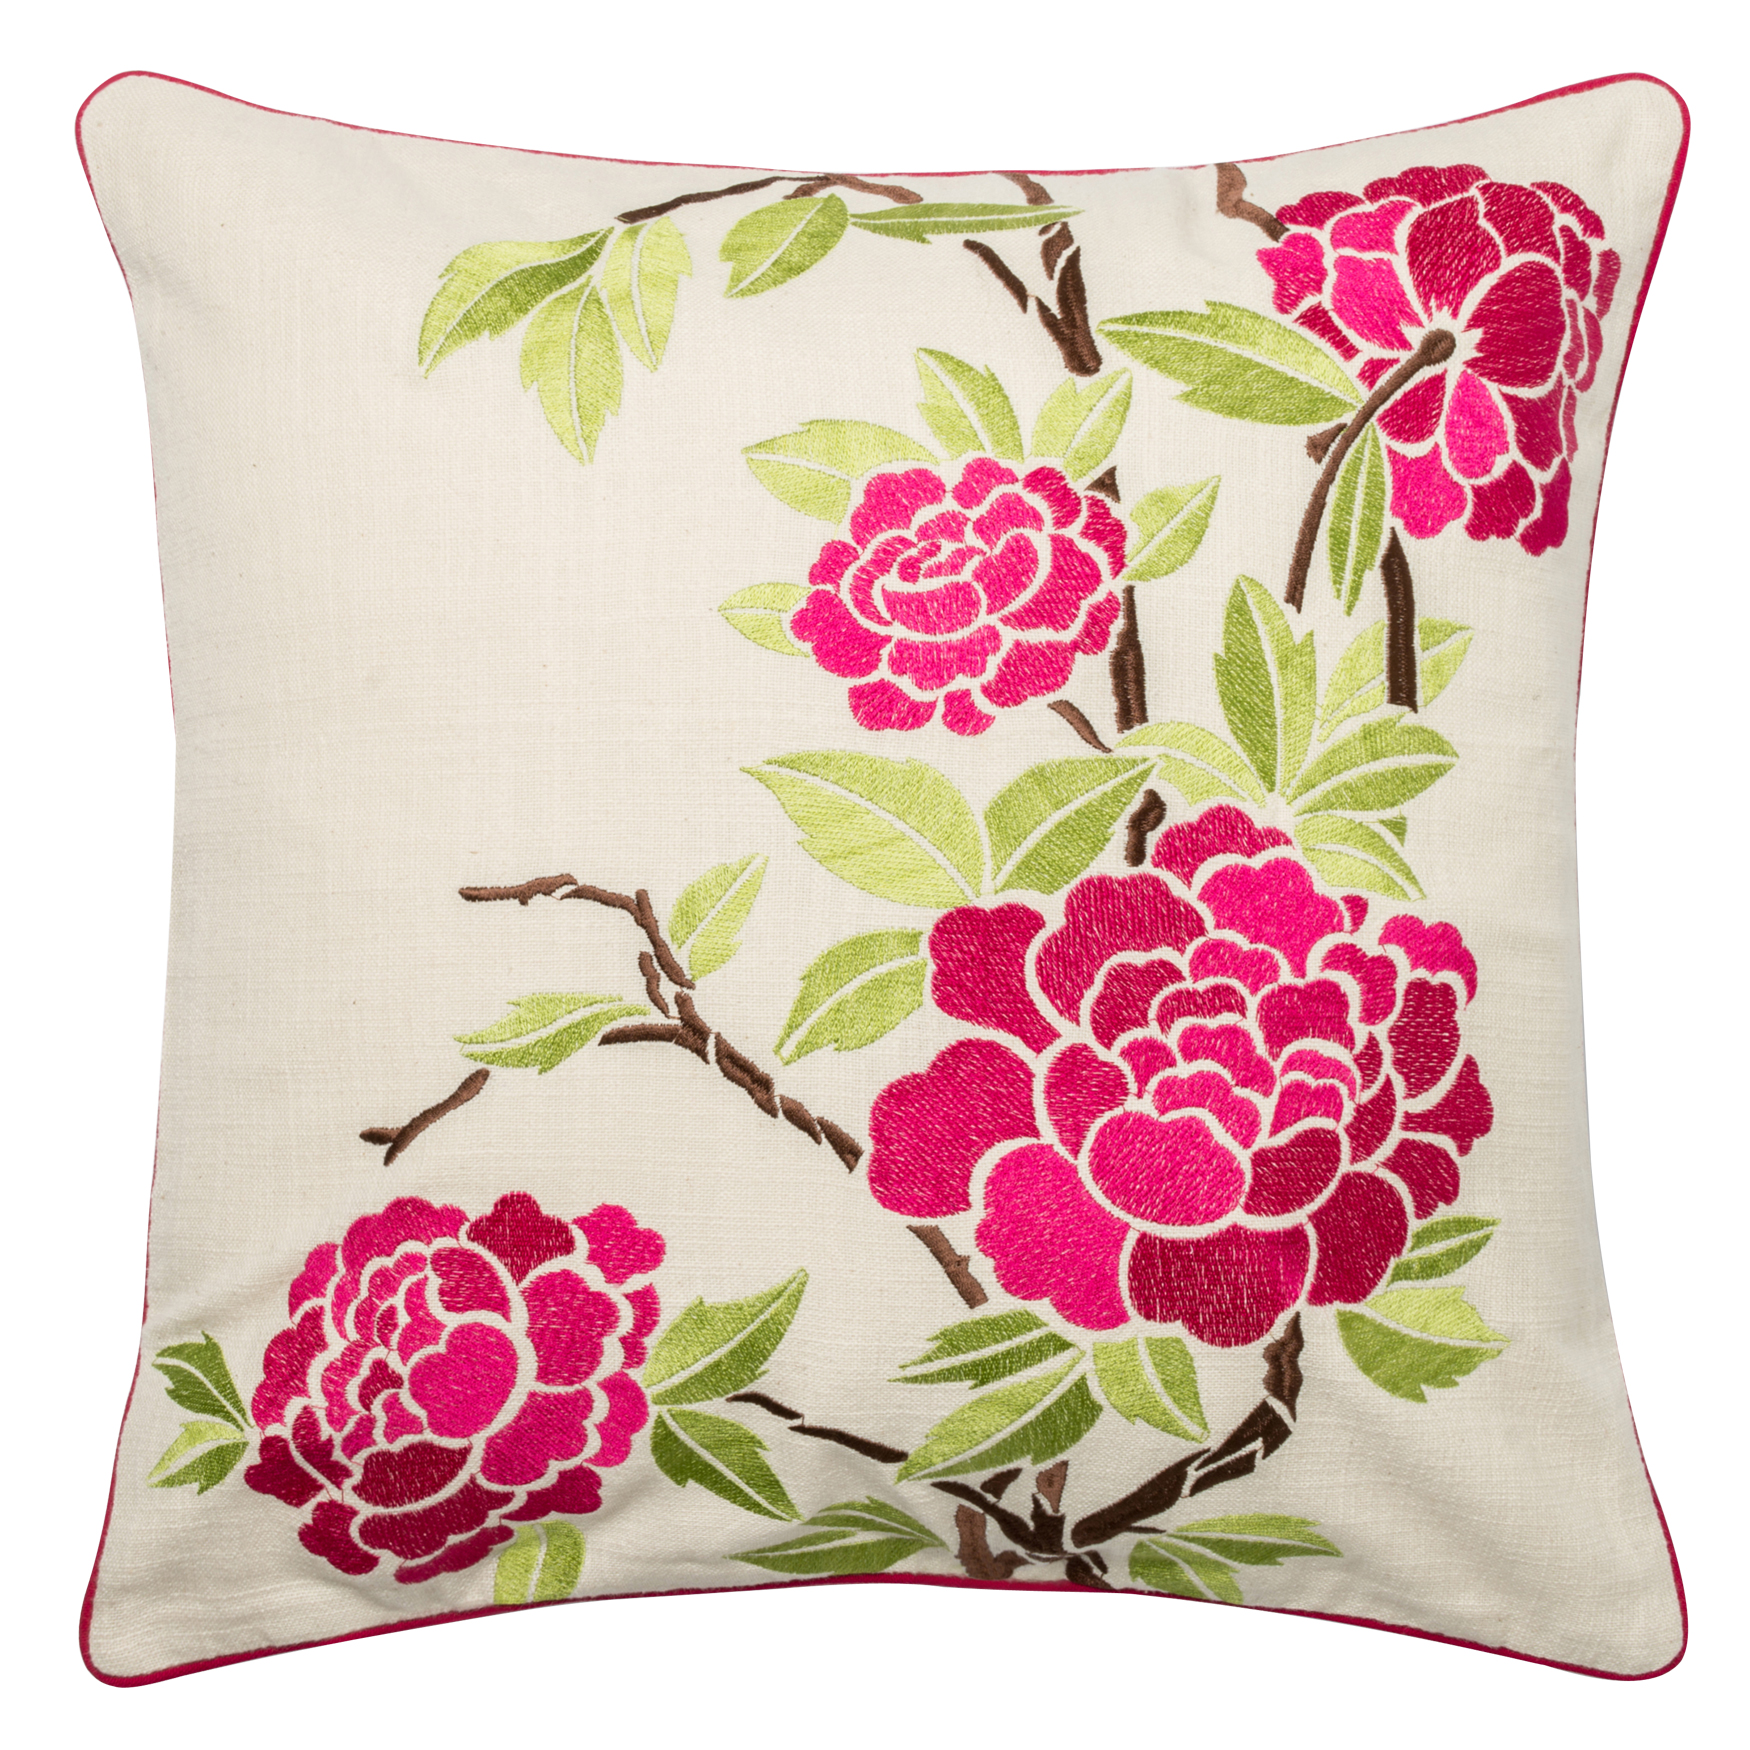 Leaf & Floral Embroidery Dec Pillow, PINK IVORY